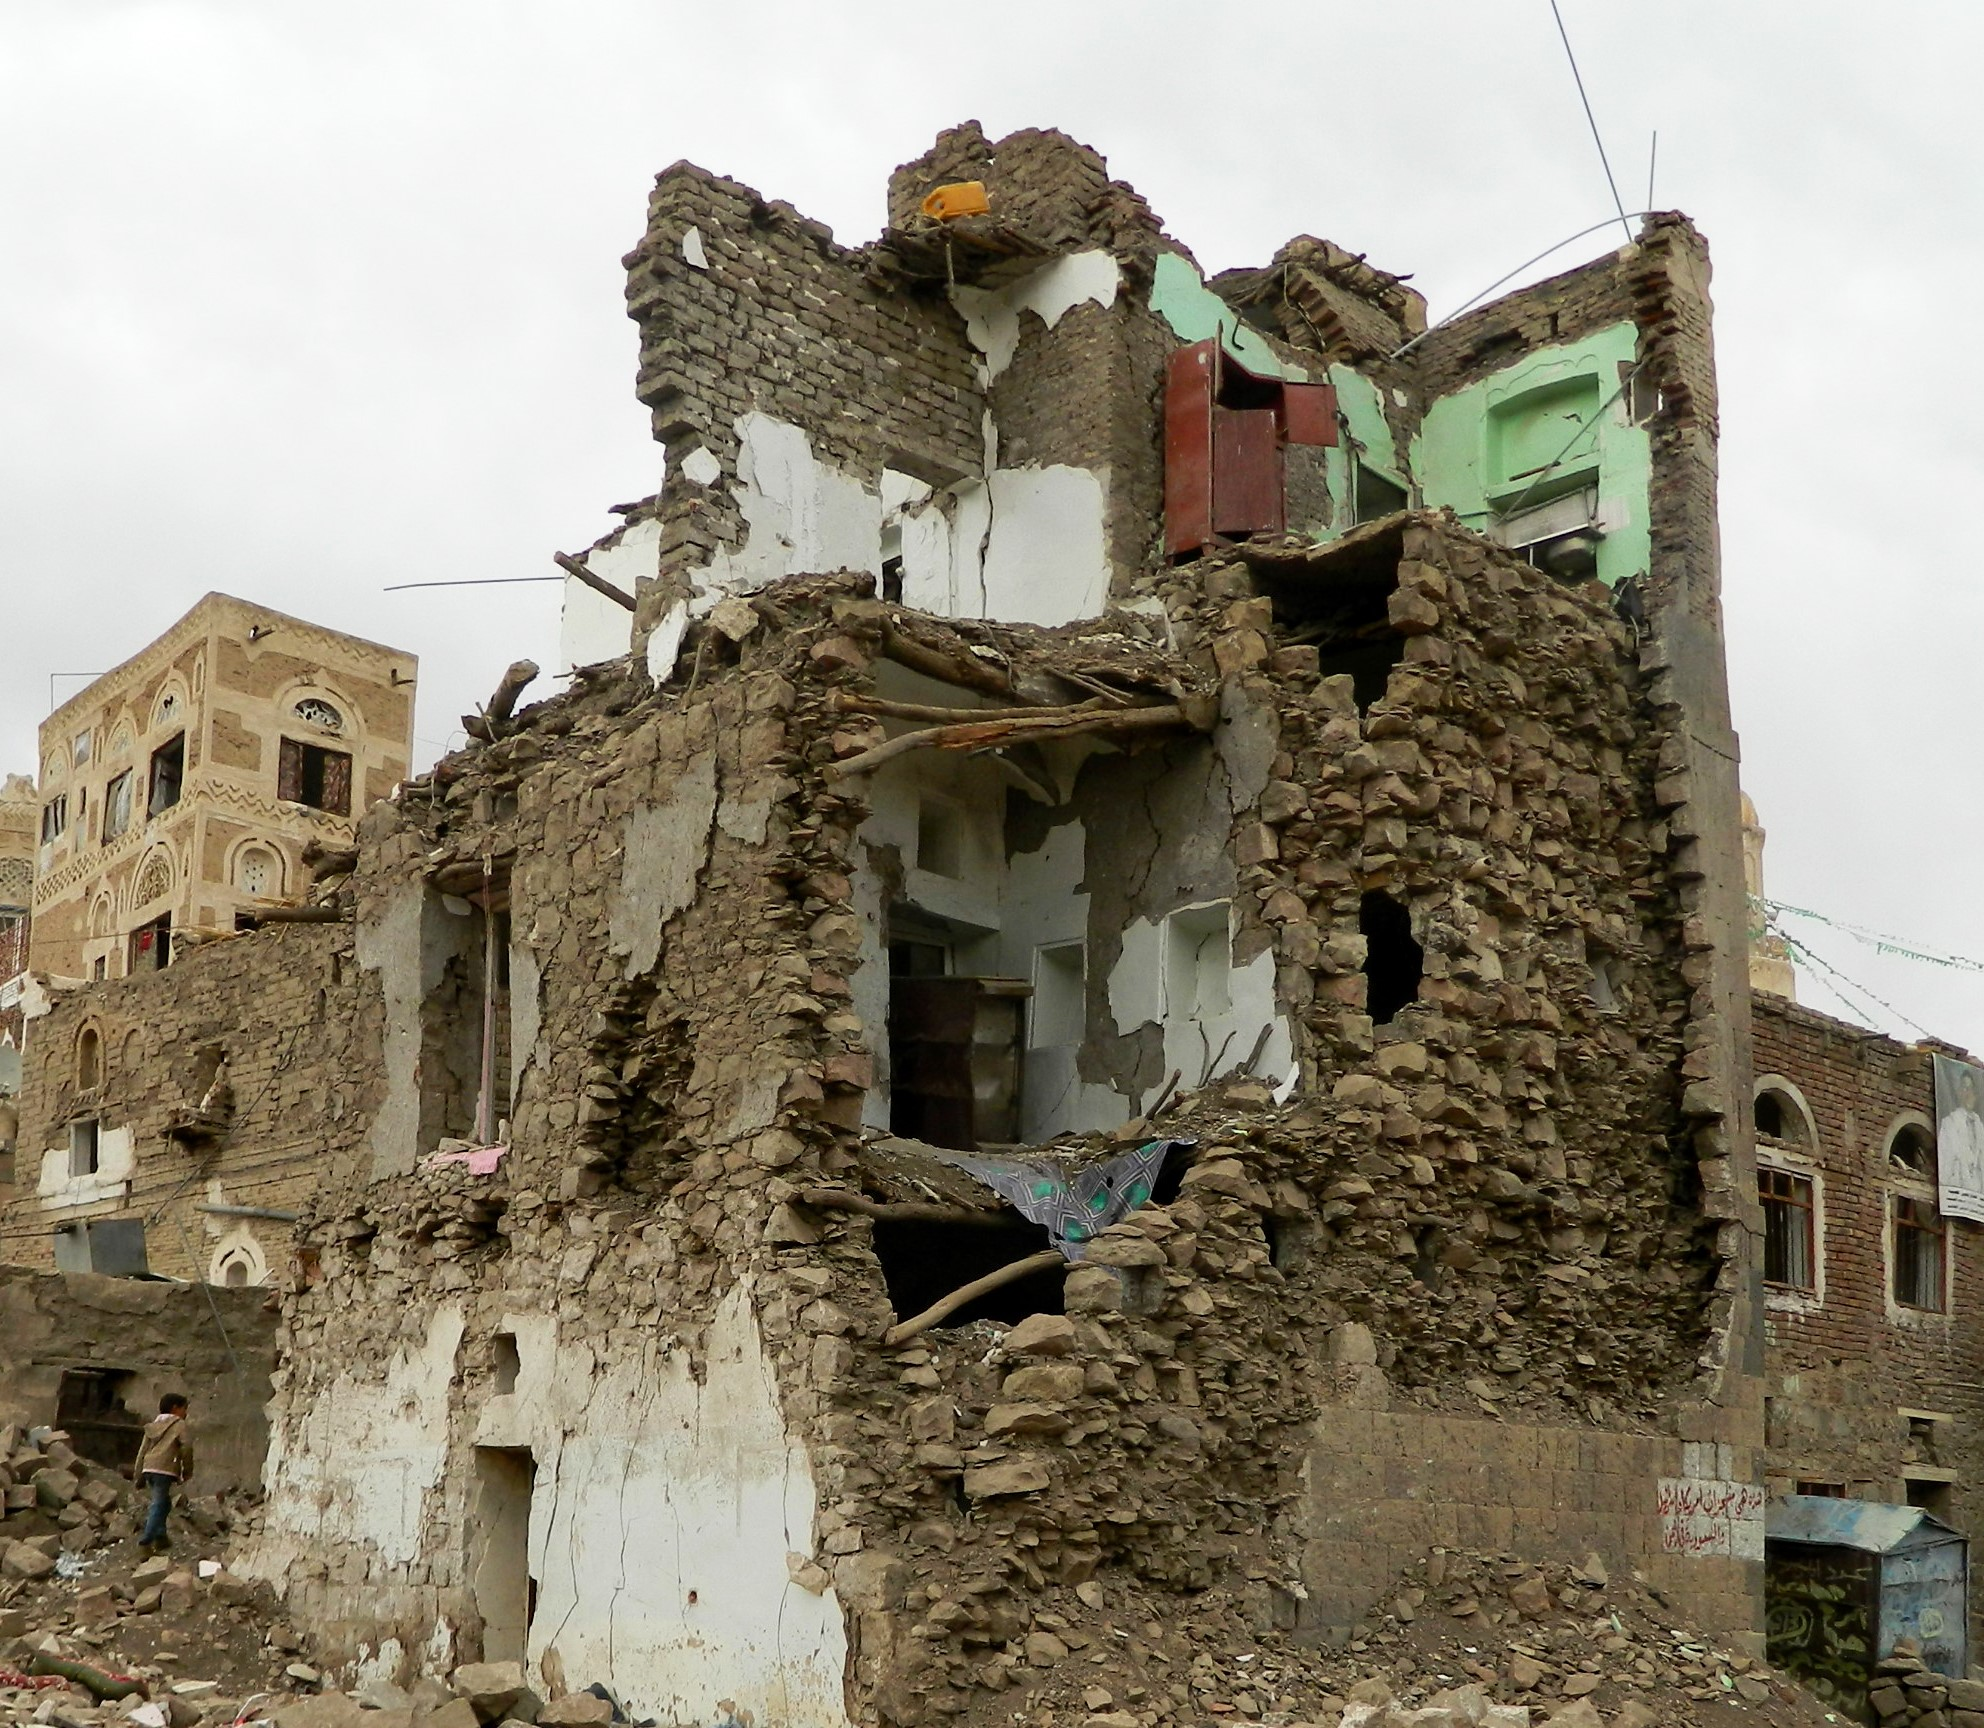 """""""Made in Spain, bombed in Yemen"""", denounces to the ICC to investigate the possible responsibility of Airbus Defence and Space and Spanish public authorities in alleged war crimes"""